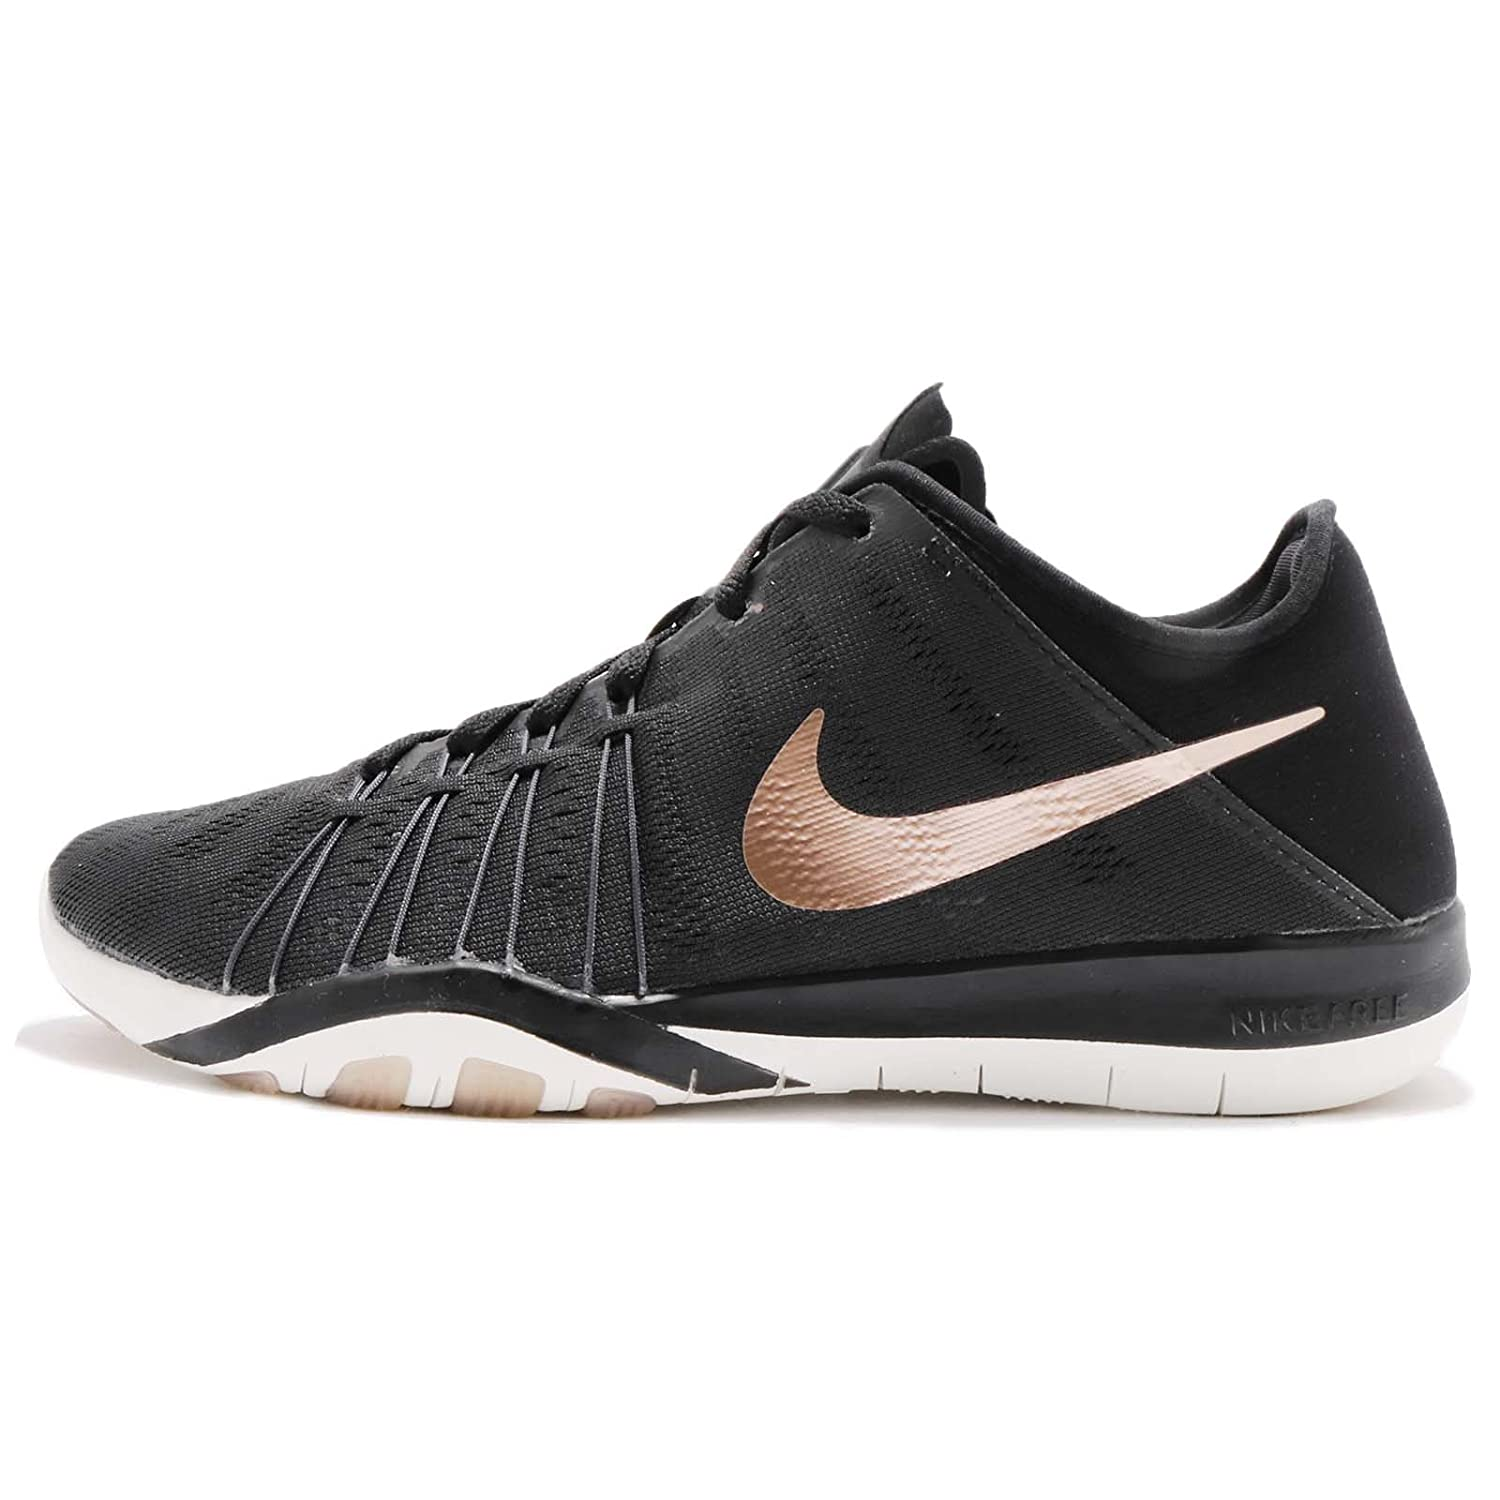 Womens Nike Free TR 6 Training Shoes B01DL1XS44 6.5 B(M) US|Black/Mtlc Red Bronze/Summit White